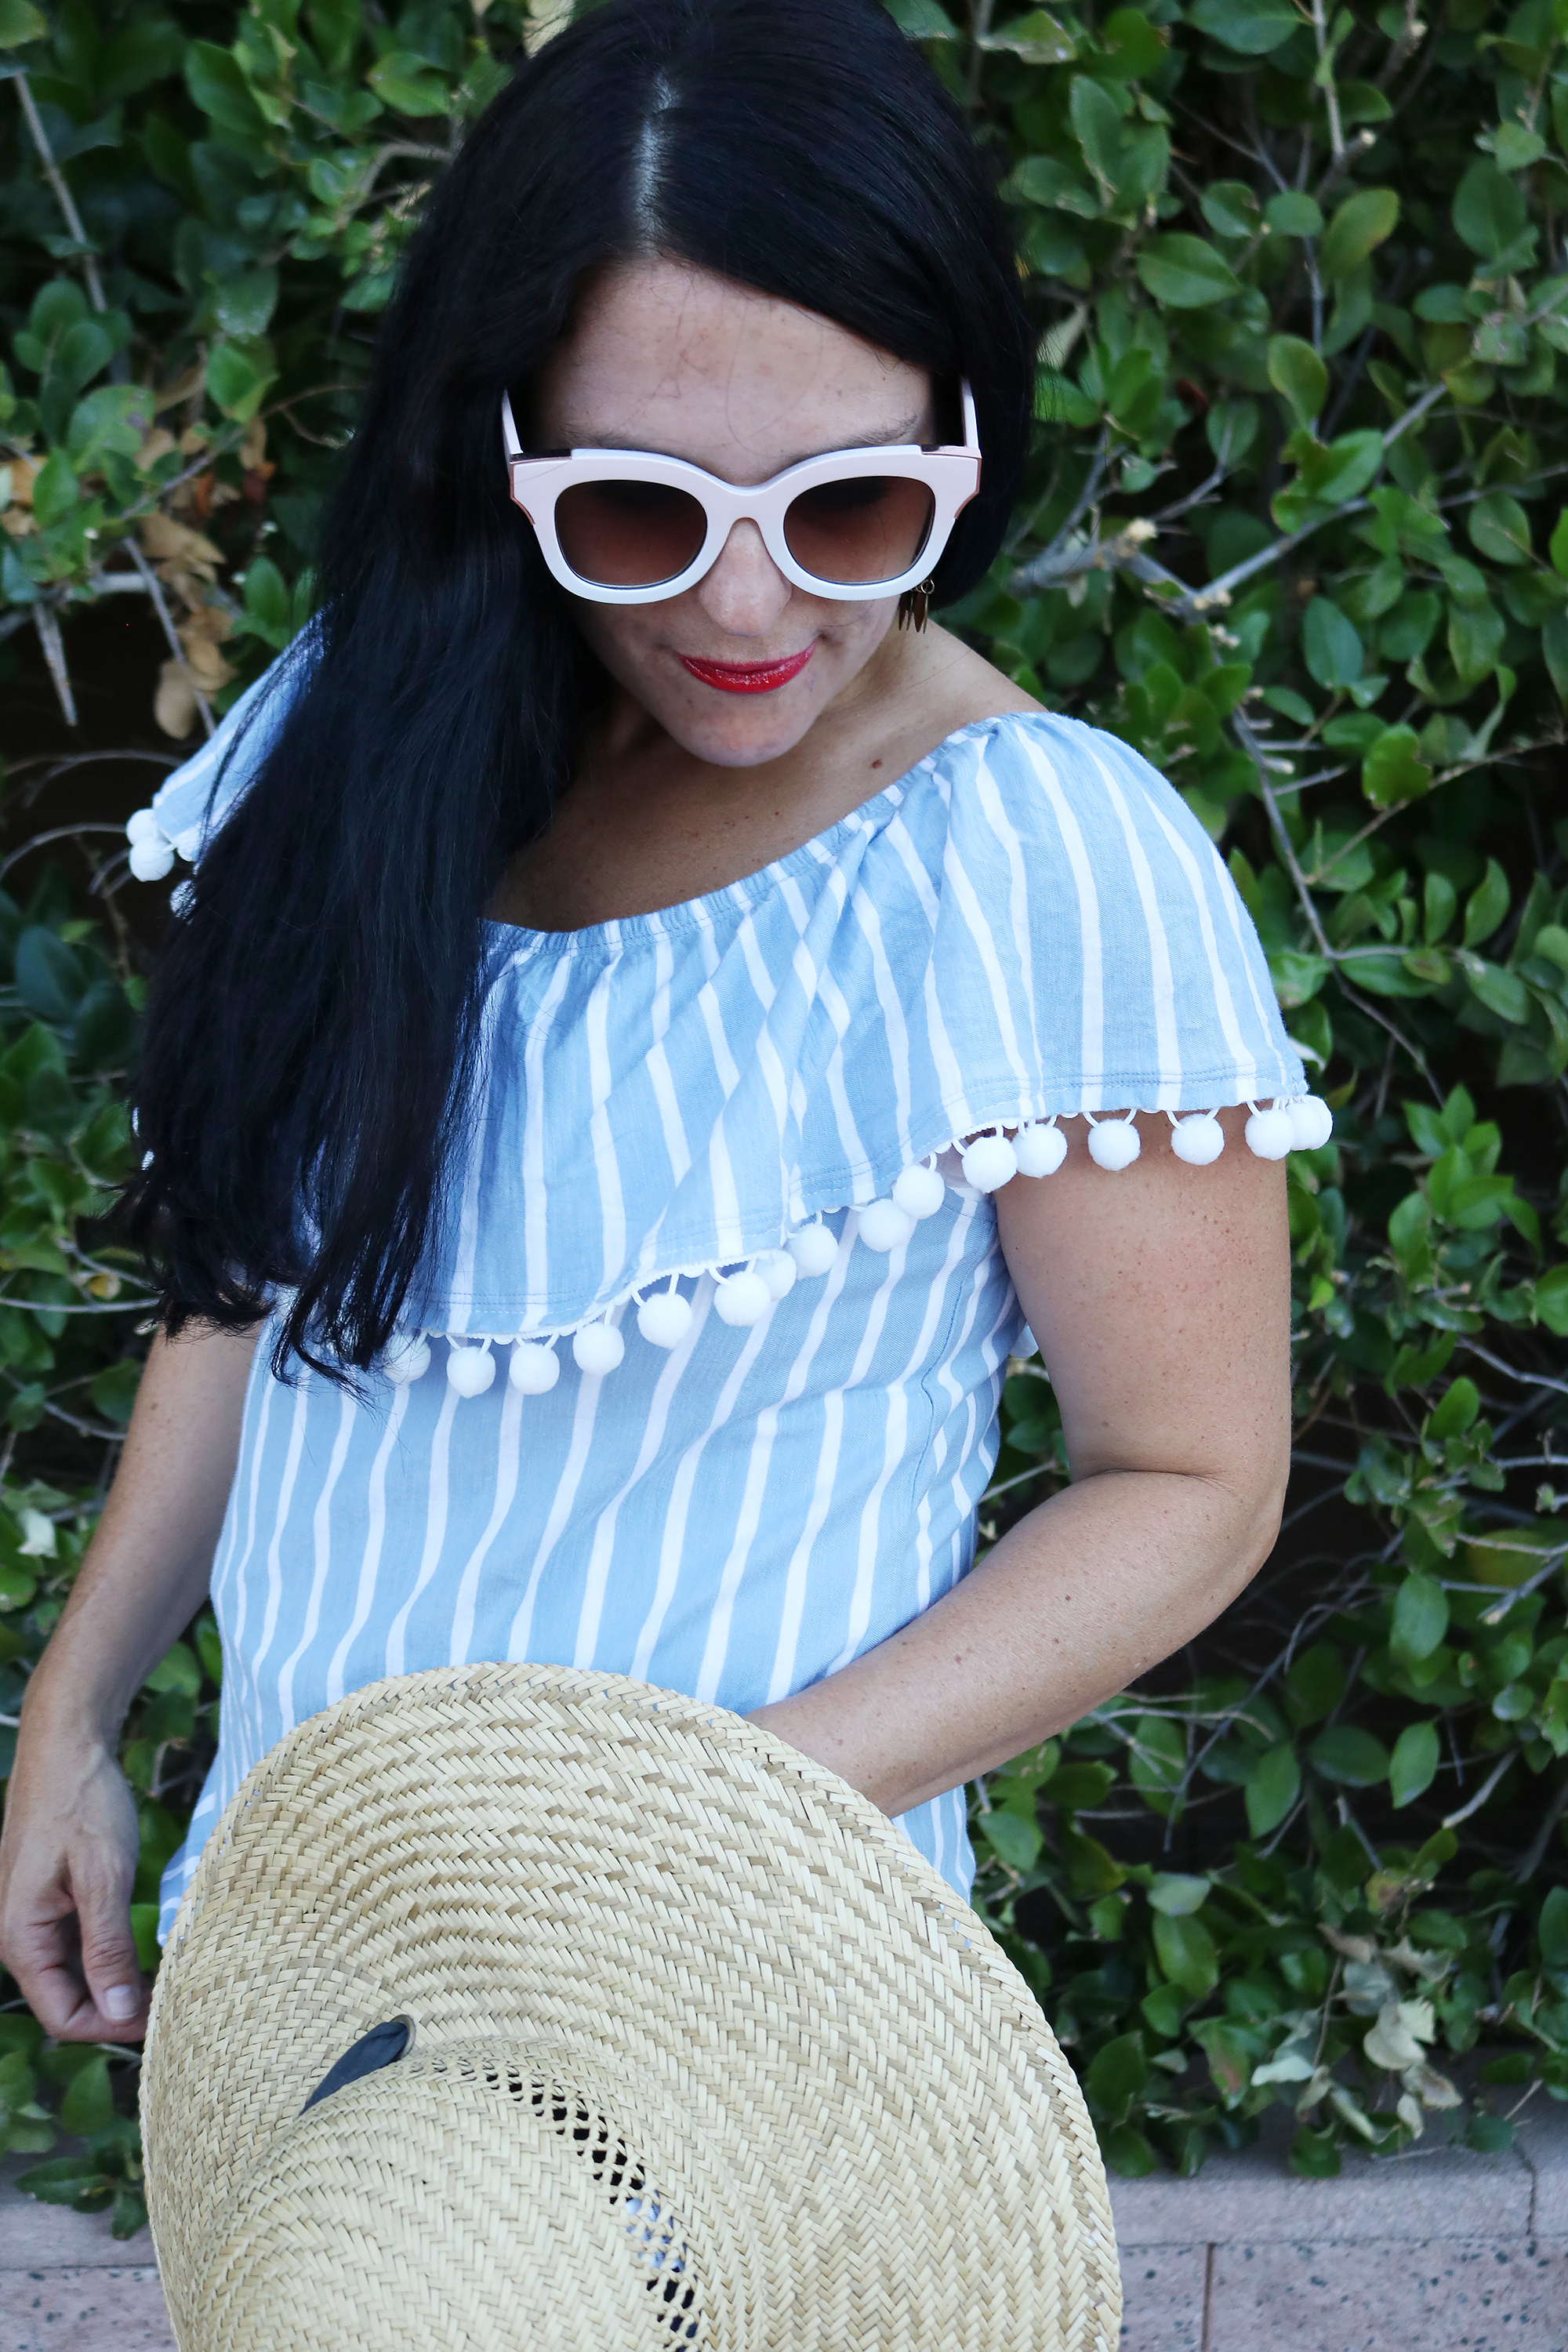 DIY Pom Pom Shirt for 4th of July || Darling Darleen #darlingdarleen #diy #pompomshirt #darleenmeier